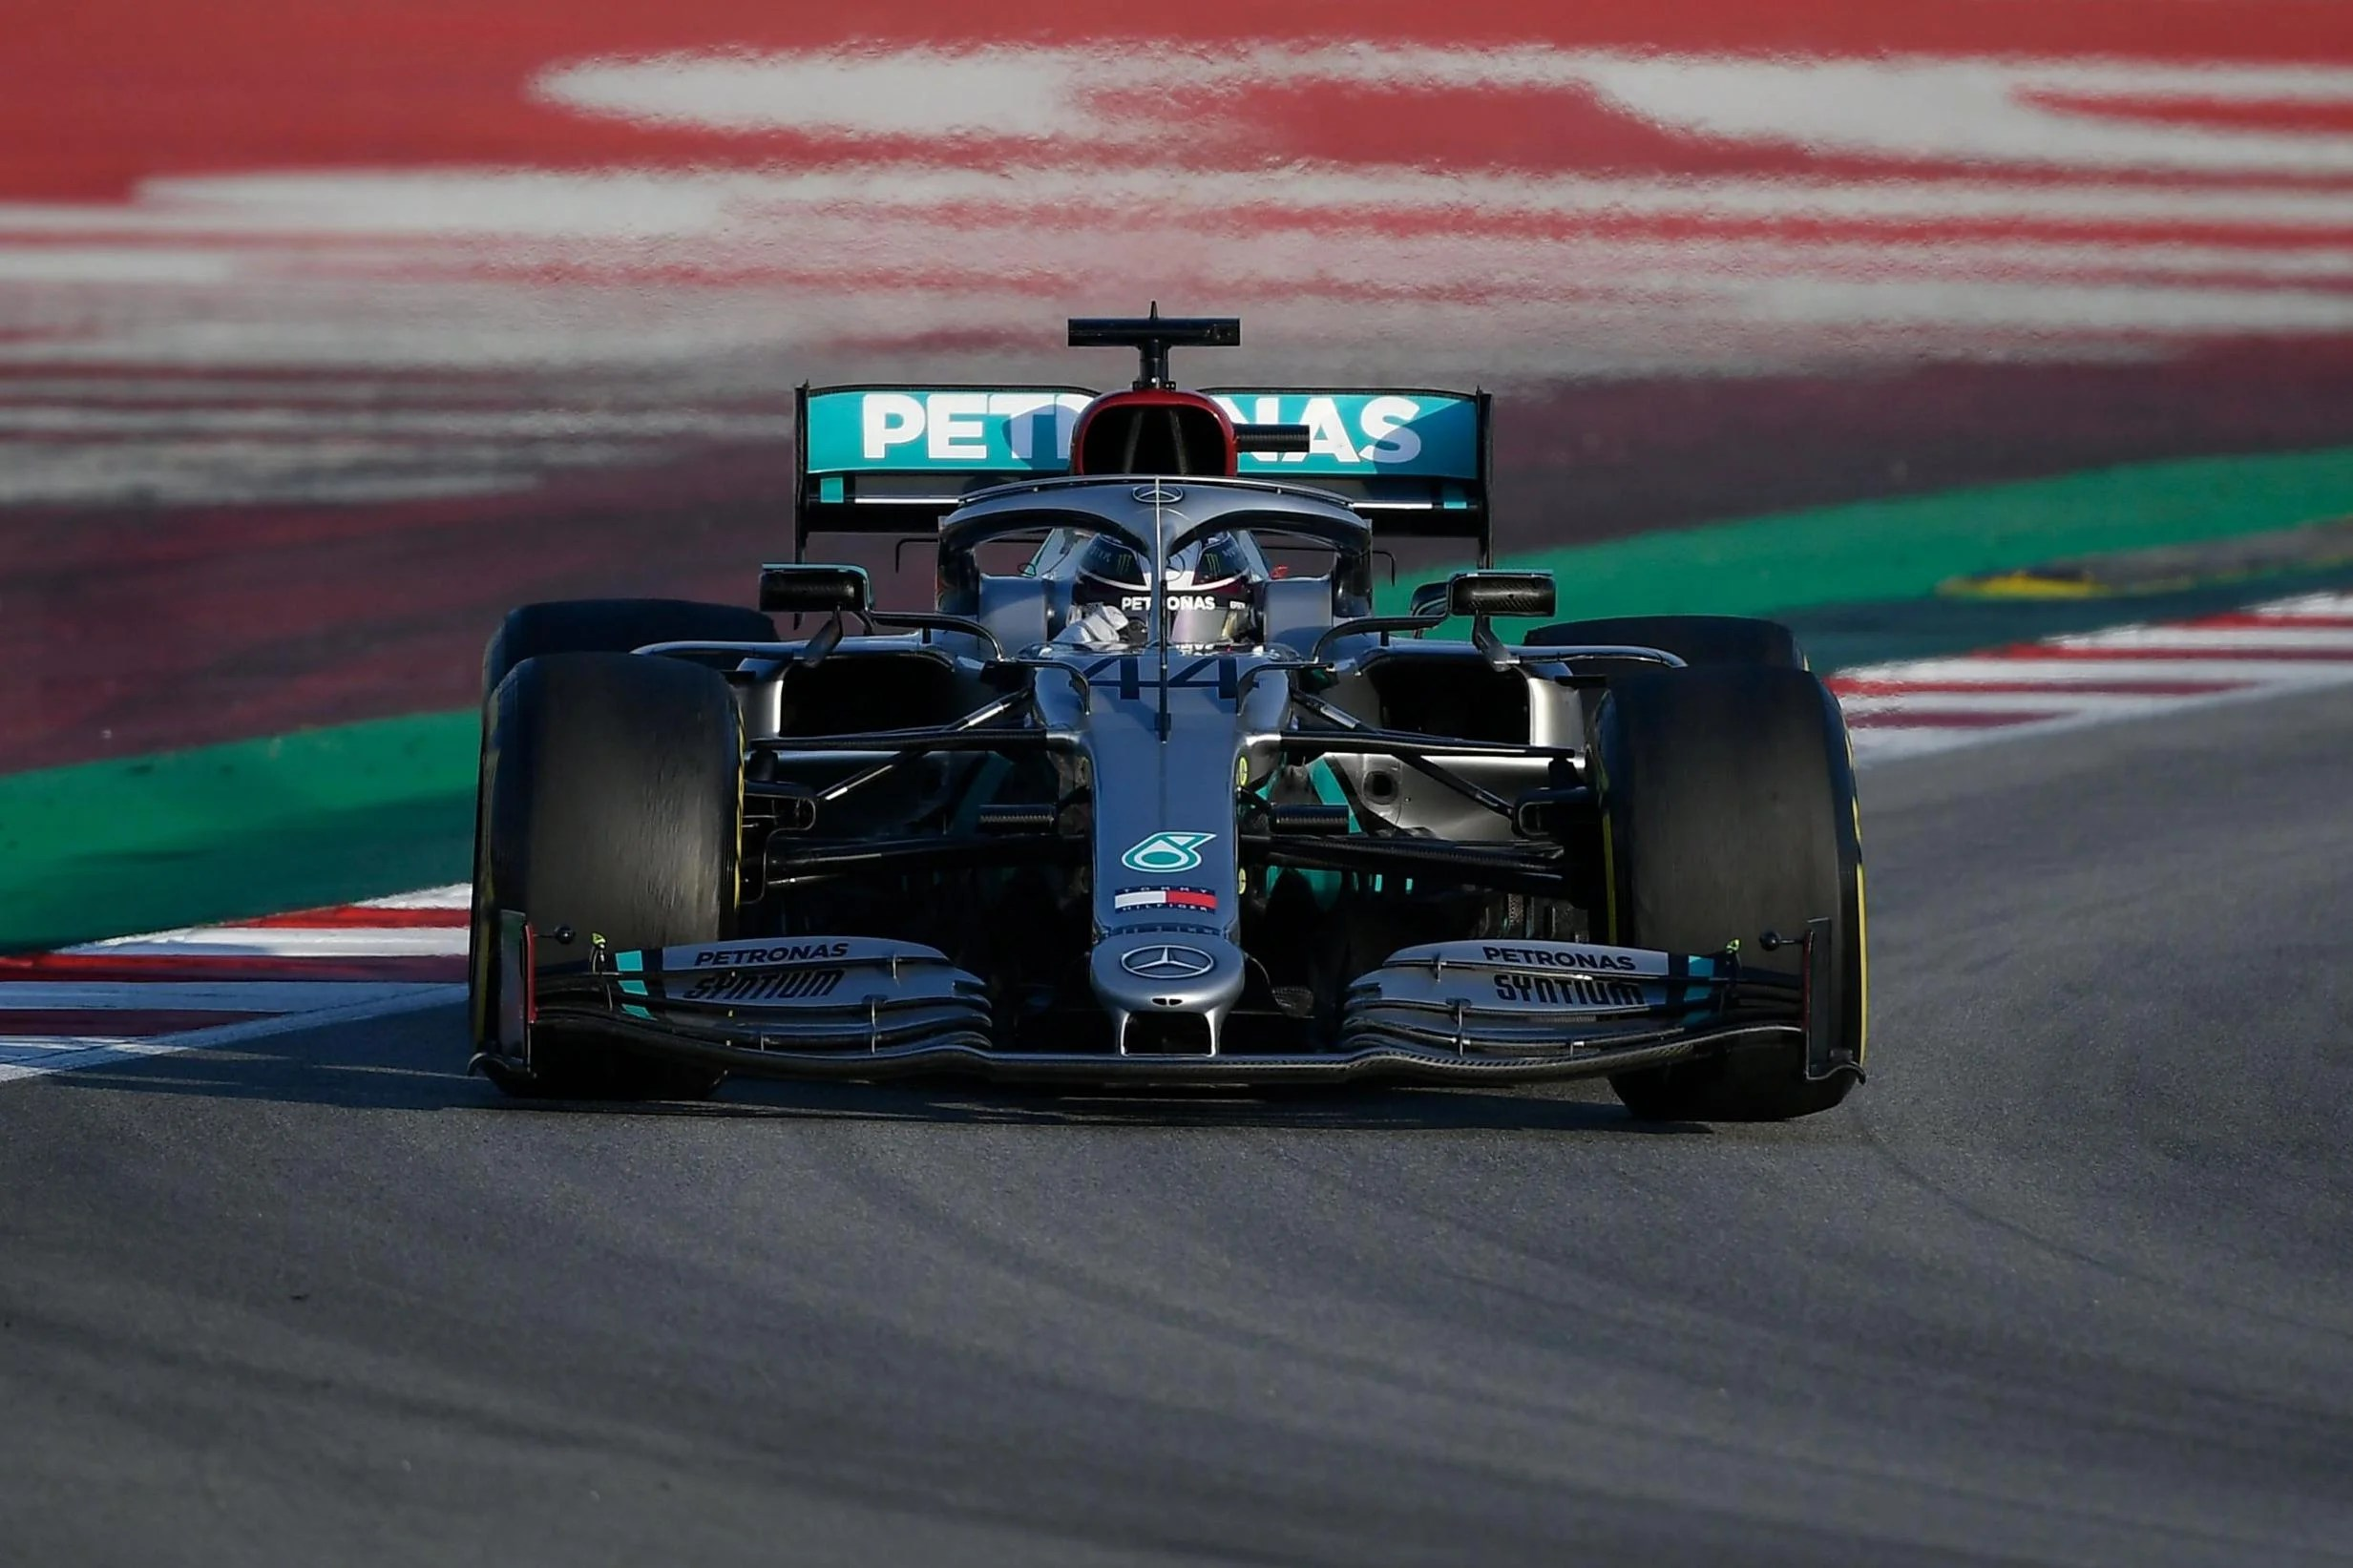 Chinese Wholesale Tottenham Formula One Teams Pushing For Delay To Wholesale Rule